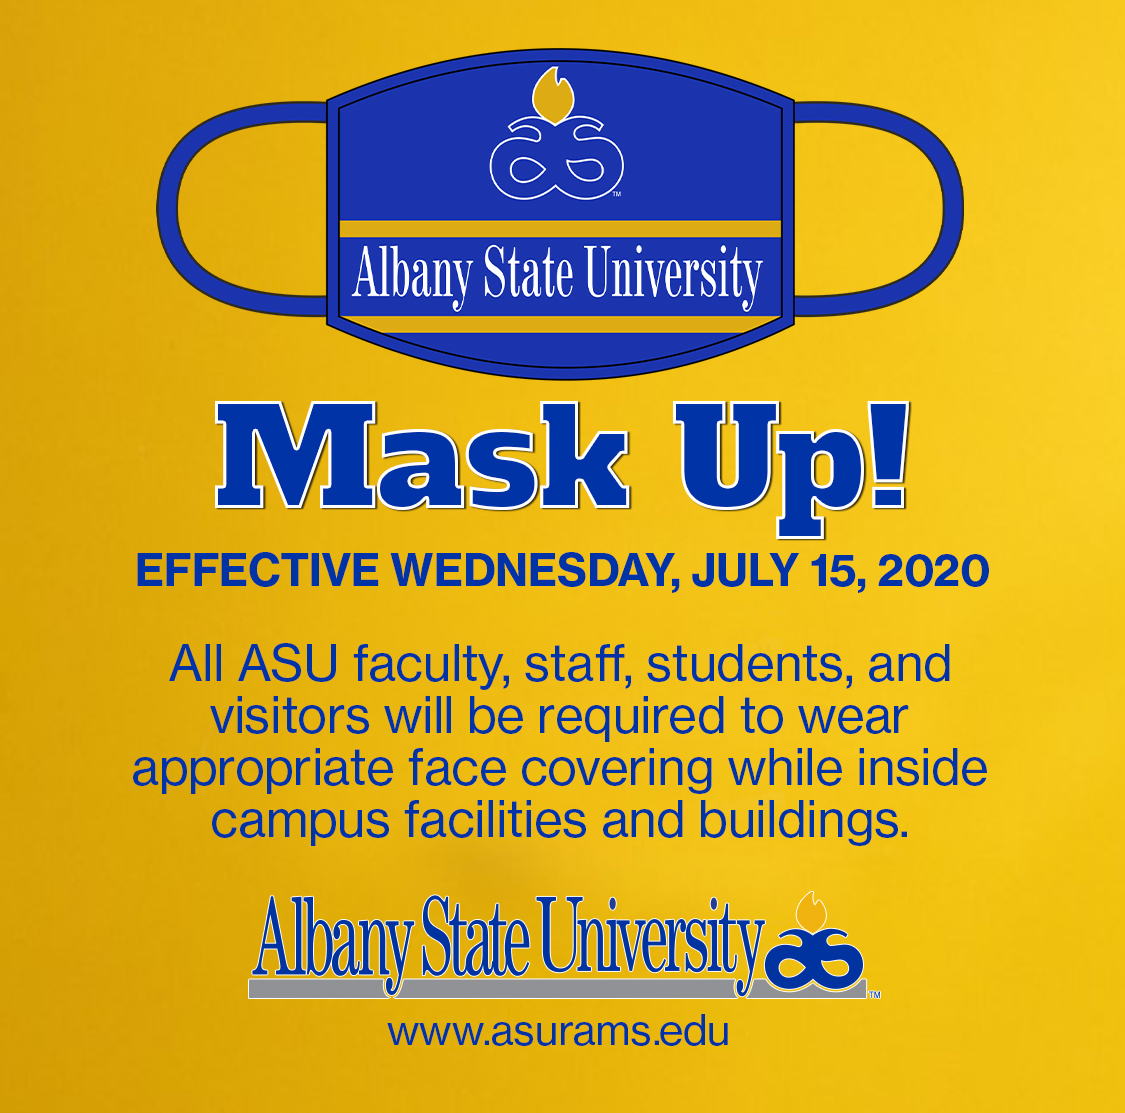 Beginning today, July 15, masks will be required in all buildings on campus. Please visit https://t.co/rtOgINFlGI for additional information. https://t.co/vNR521F2jr